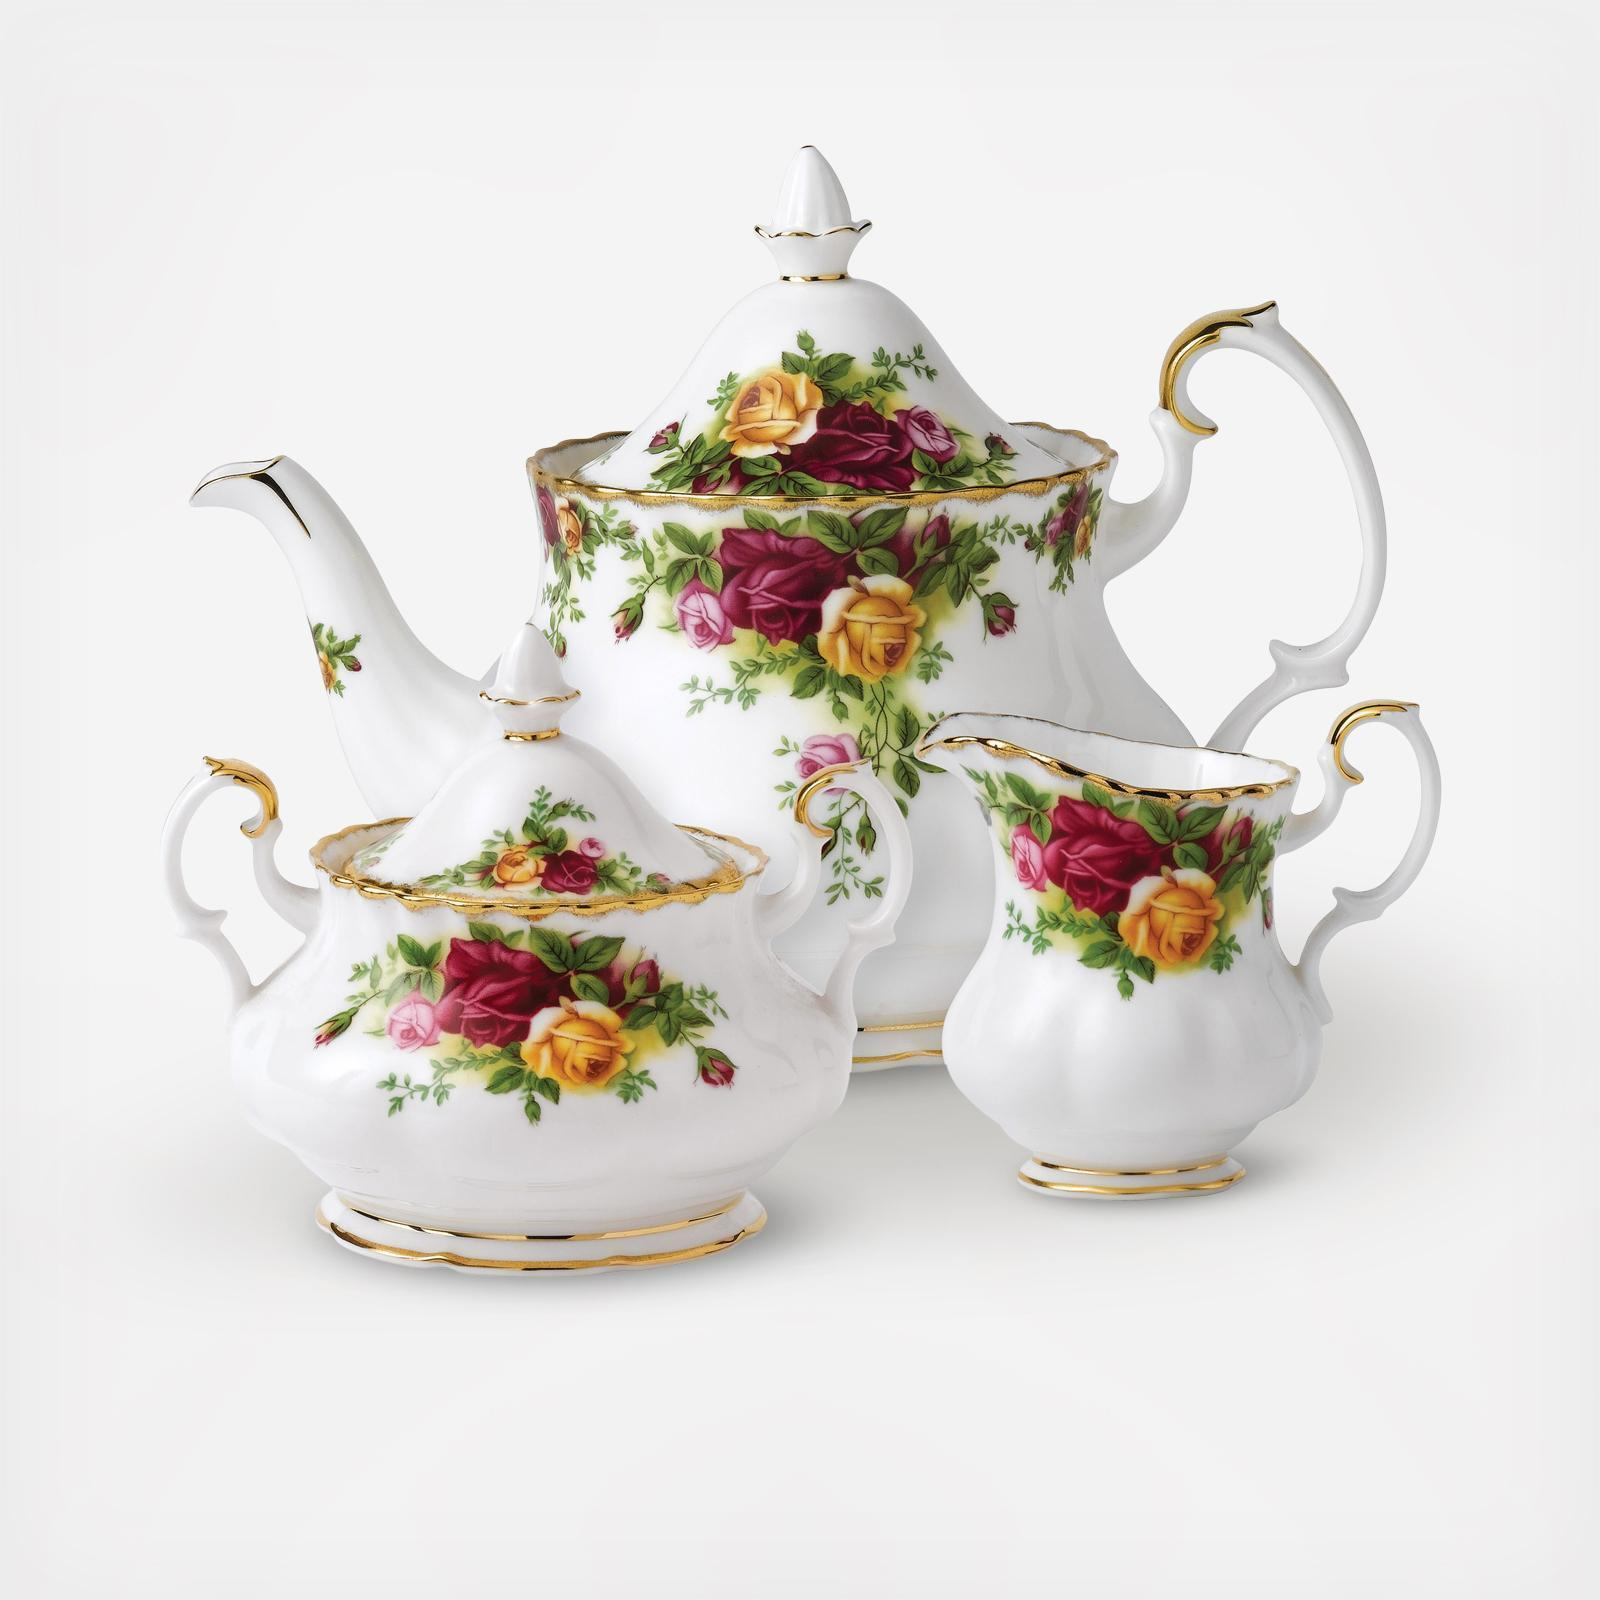 beautiful white Royal Tea set